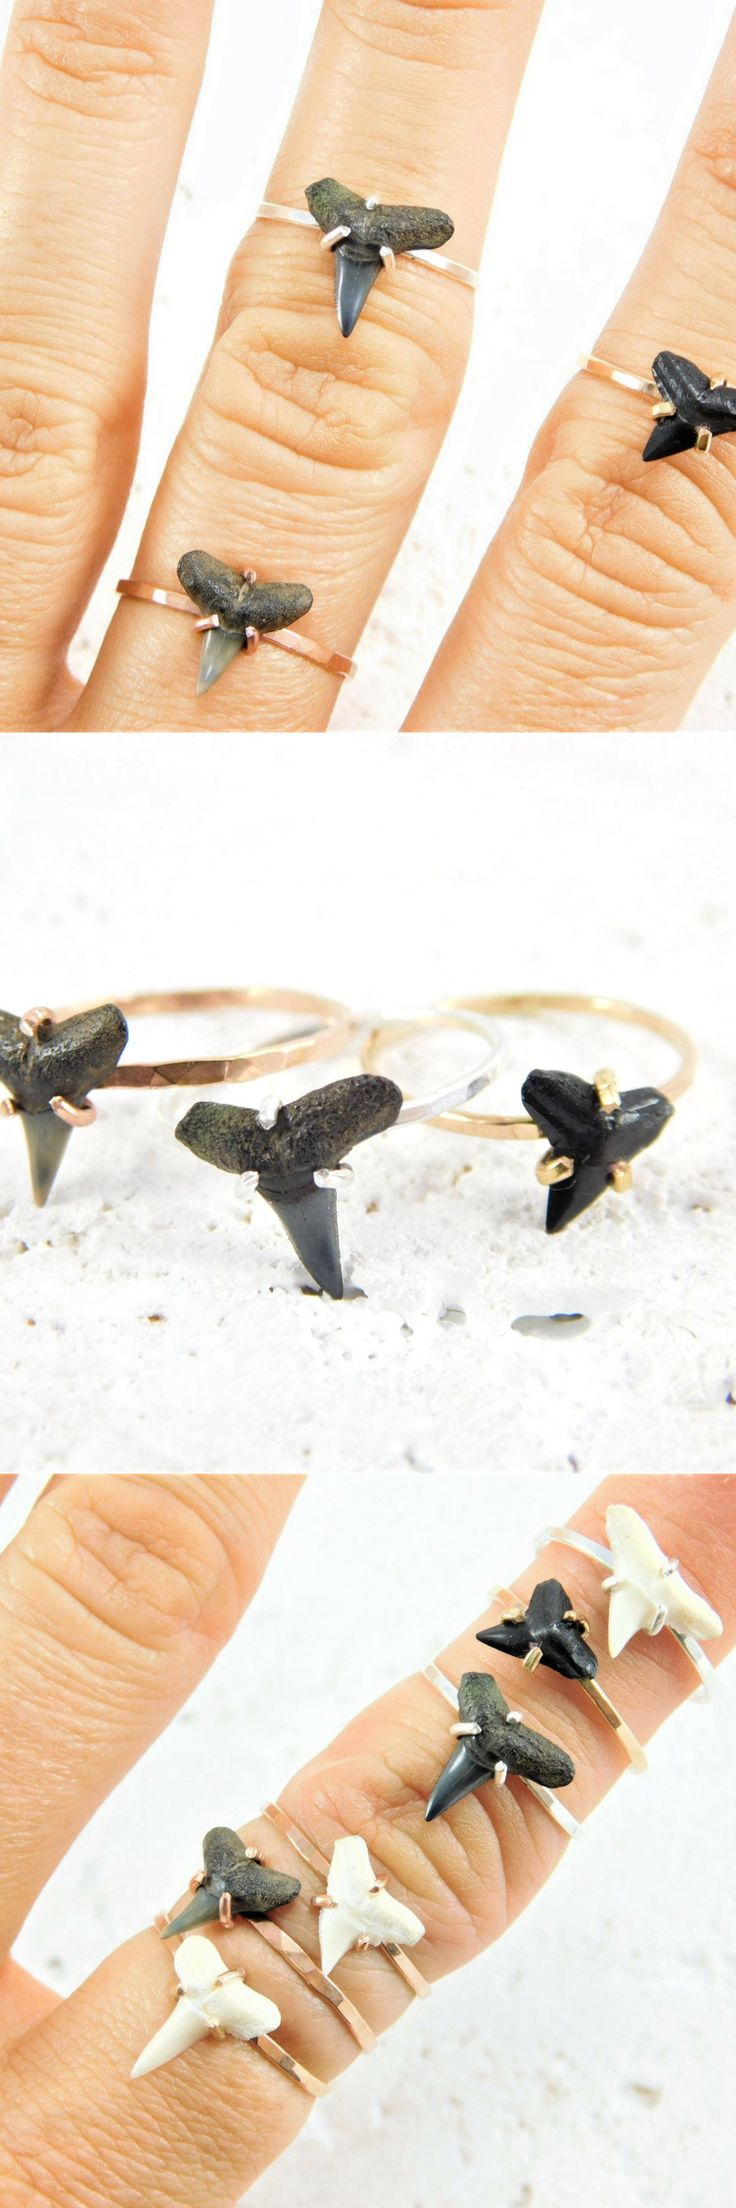 Shark Tooth Ring, Shark Tooth, Shark Tooth Jewelry, Fossil Ring, Fossil Jewelry, Gold Shark Tooth Ring, Silver Shark Tooth Ring, Beach Ring, Summer Ring, Ocean Ring, Shark Teeth, Sharks Tooth,